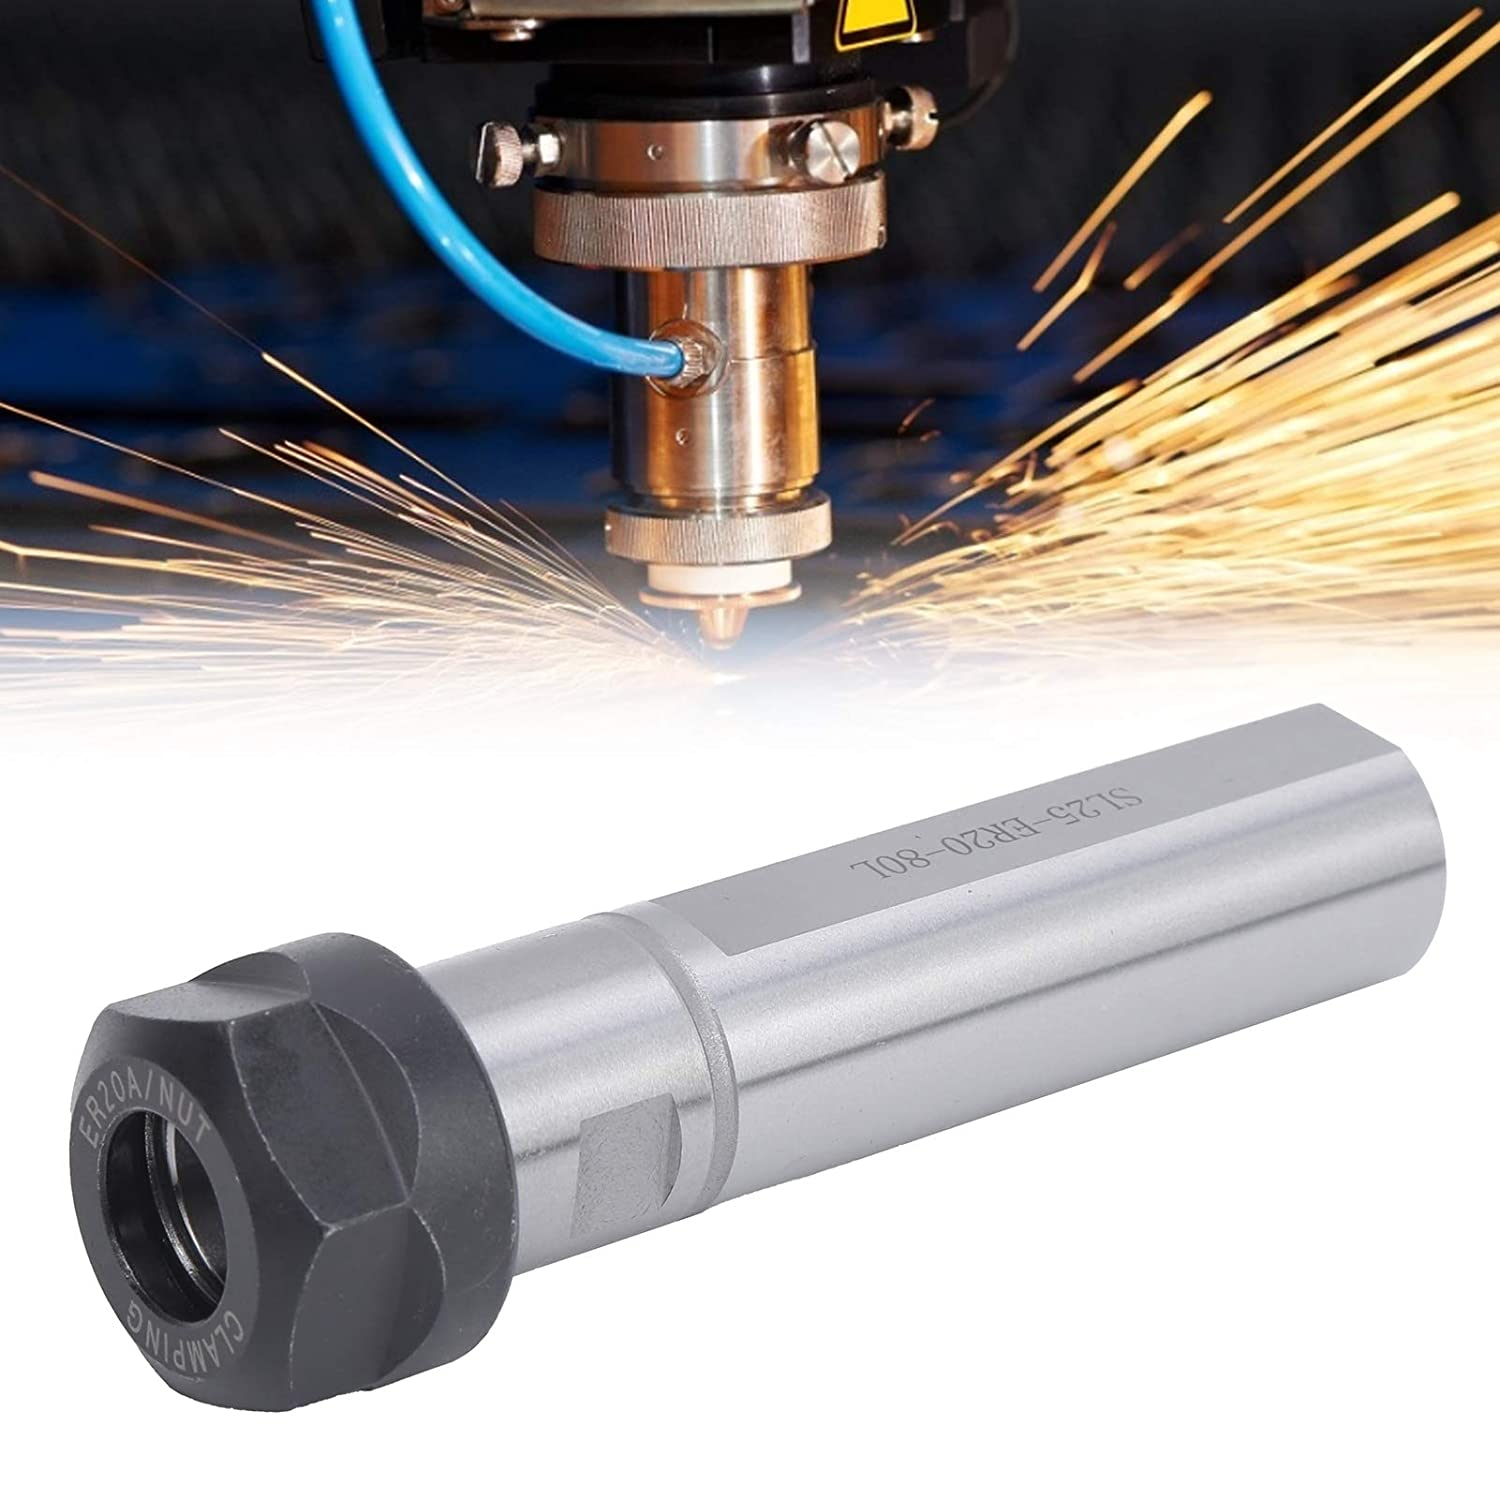 Lathe Extension Rod, Reduce Costs Improve Efficiency Collet Chuc